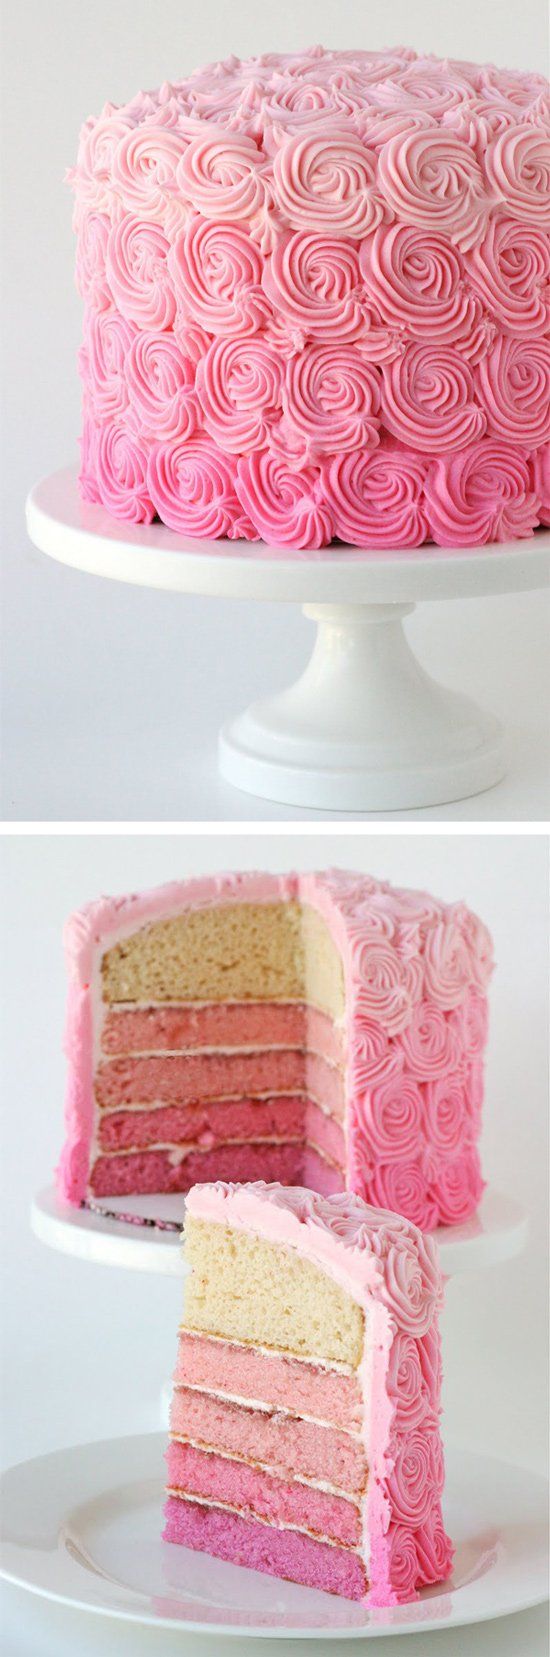 The most beautiful cake ever! Includes recipe and step-by-step instructions to re-create this gorgeous cake.